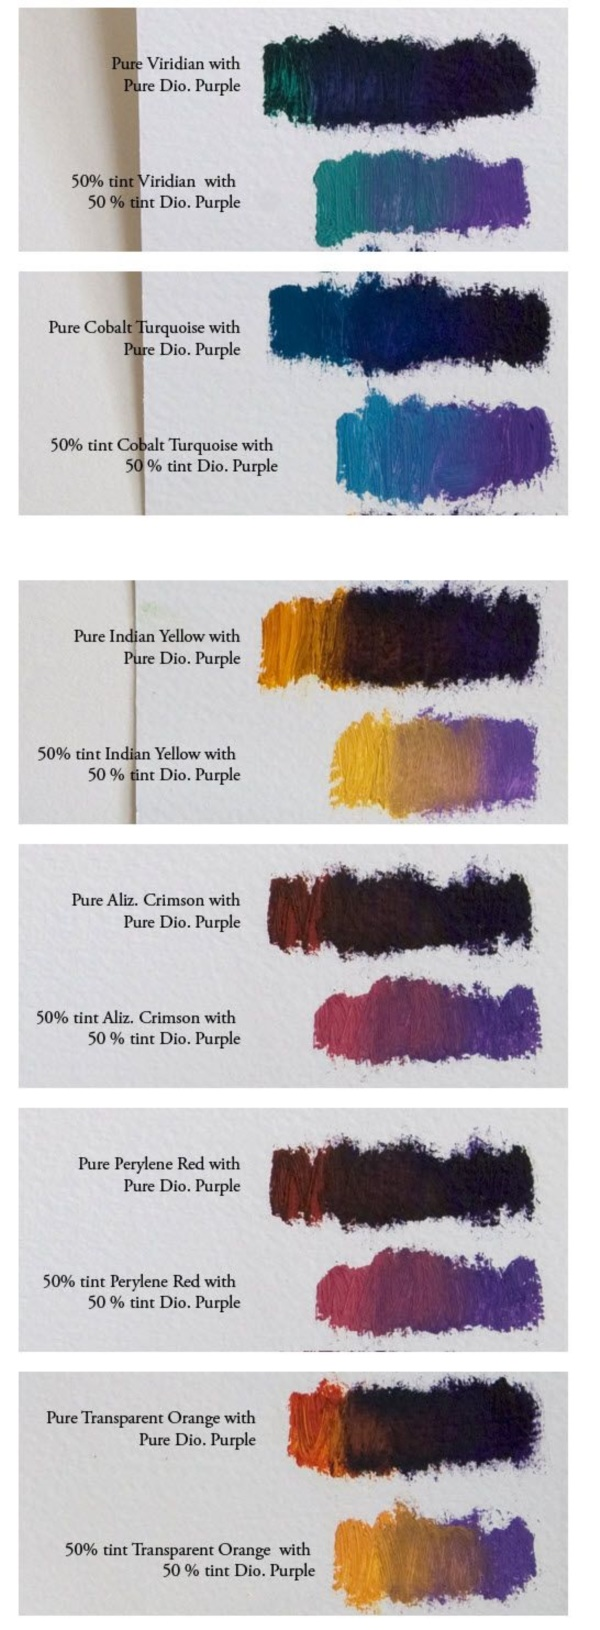 practically-useful-color-mixing-charts0351